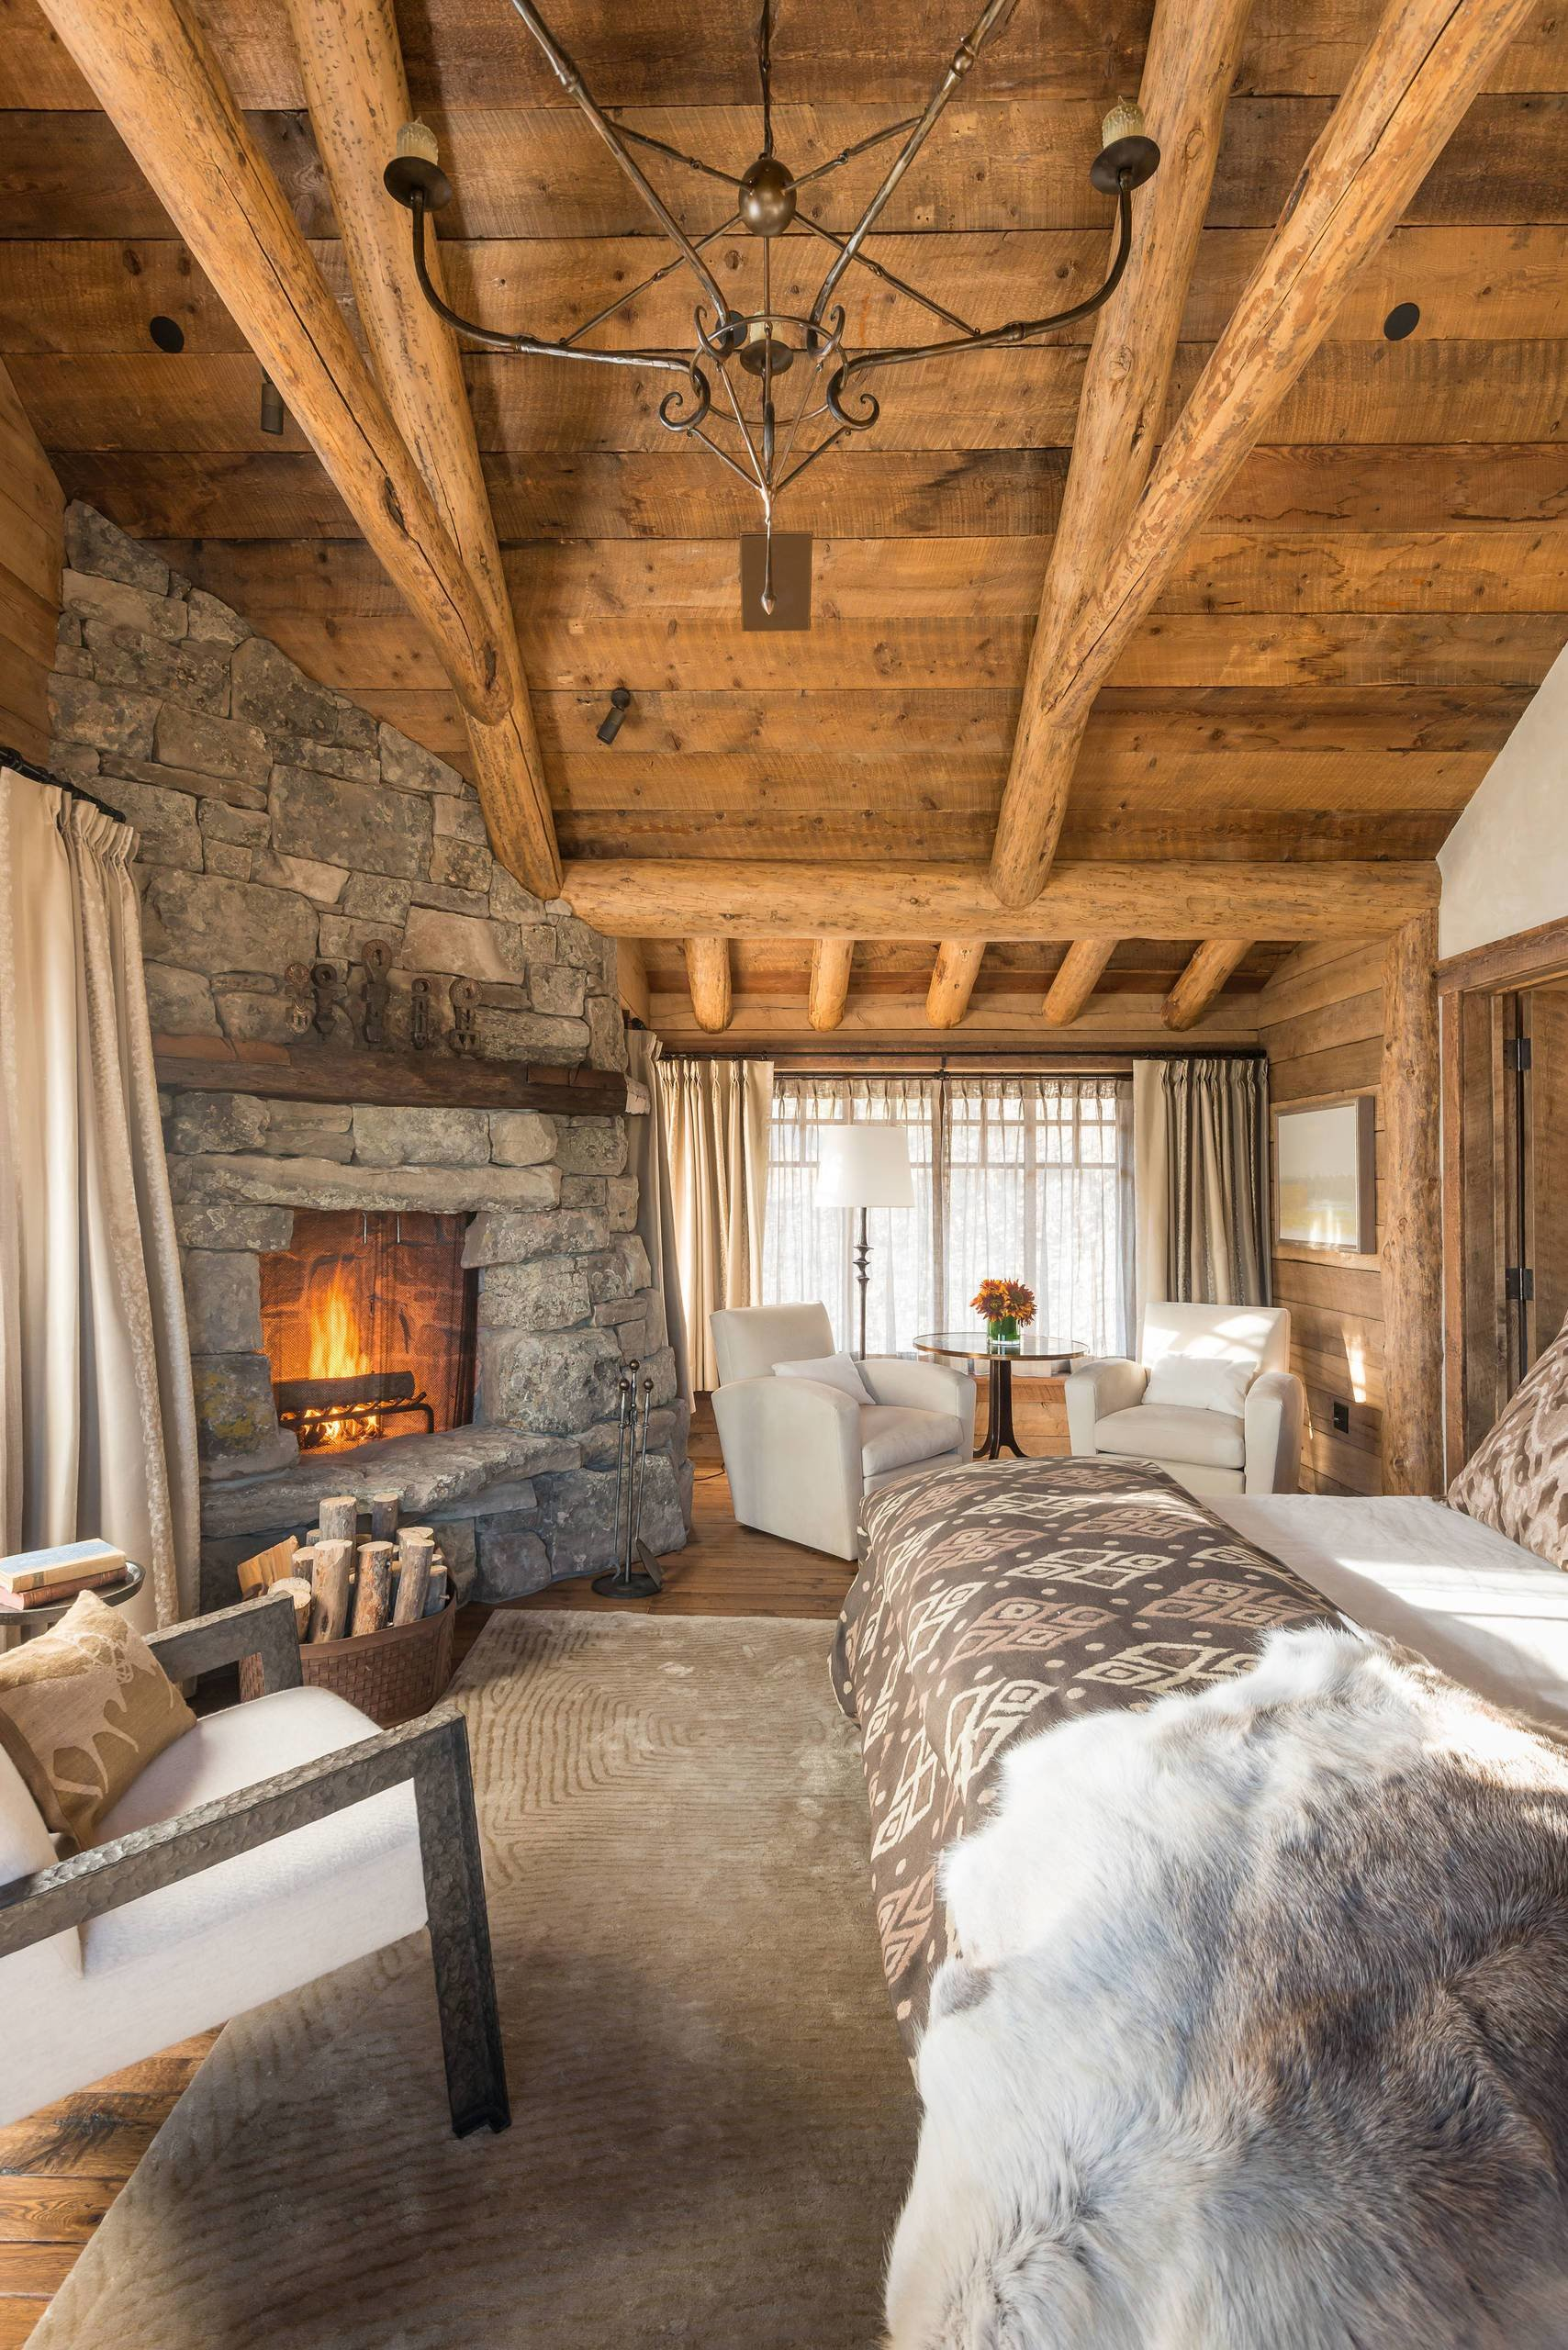 Best 15 Wicked Rustic Bedroom Designs That Will Make You Want Them With Pictures